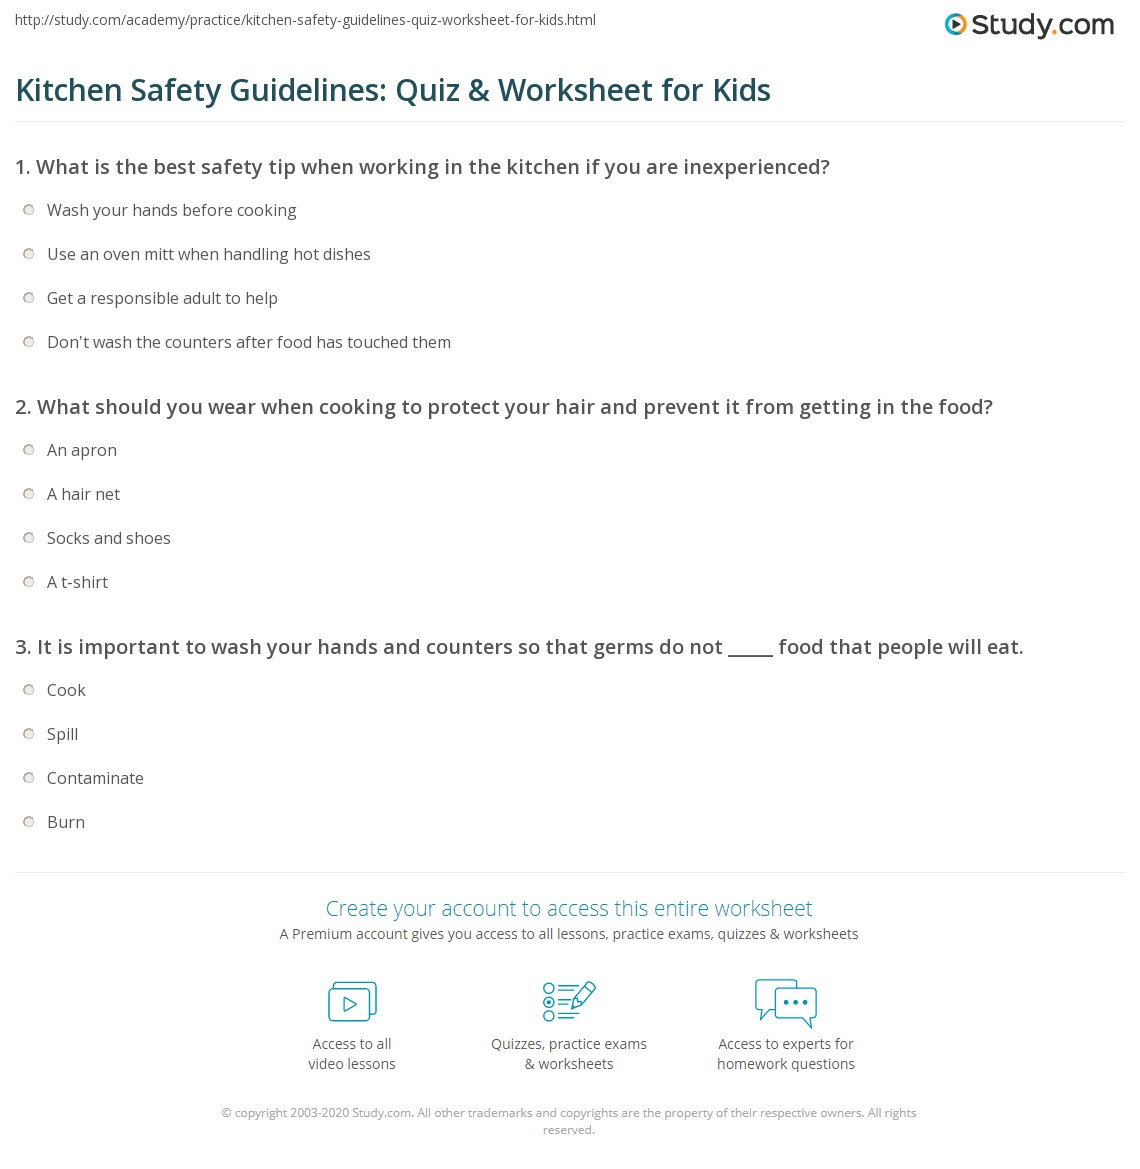 Kitchen Safety Guidelines Quiz Worksheet For Kids